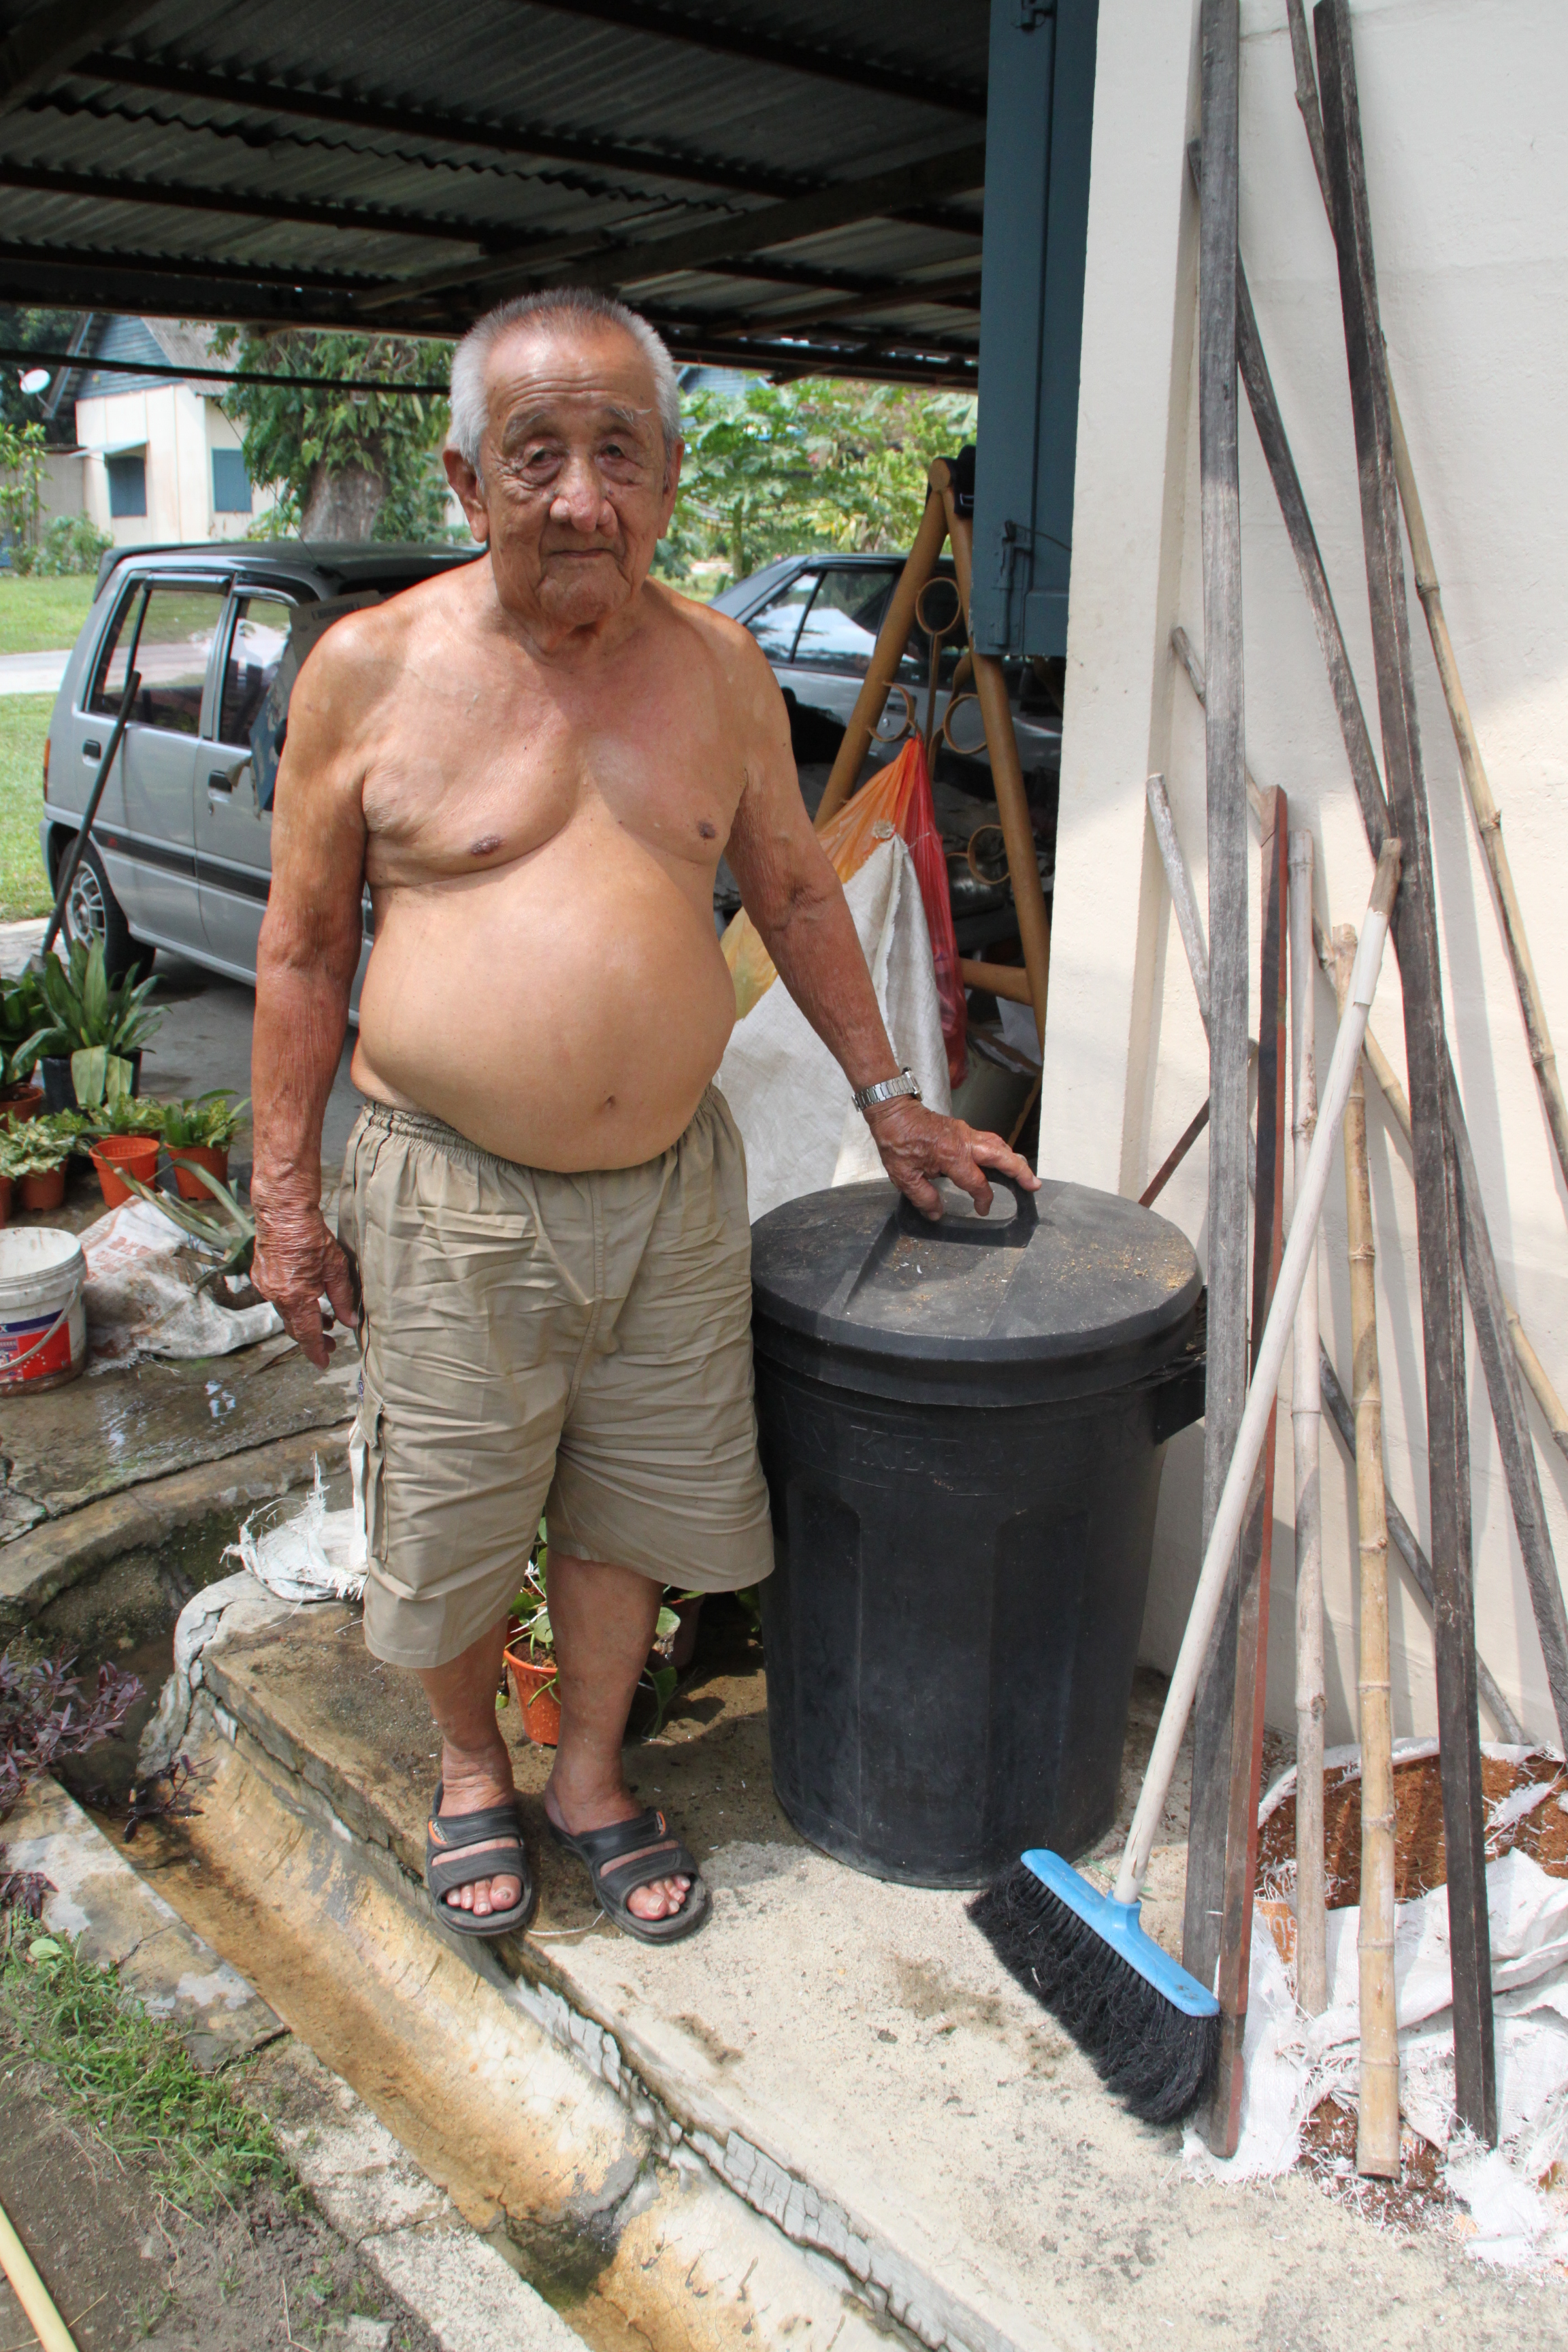 Chiam showing the dustbin that was used for collecting rubbish. (photo by Tan Ean Nee)